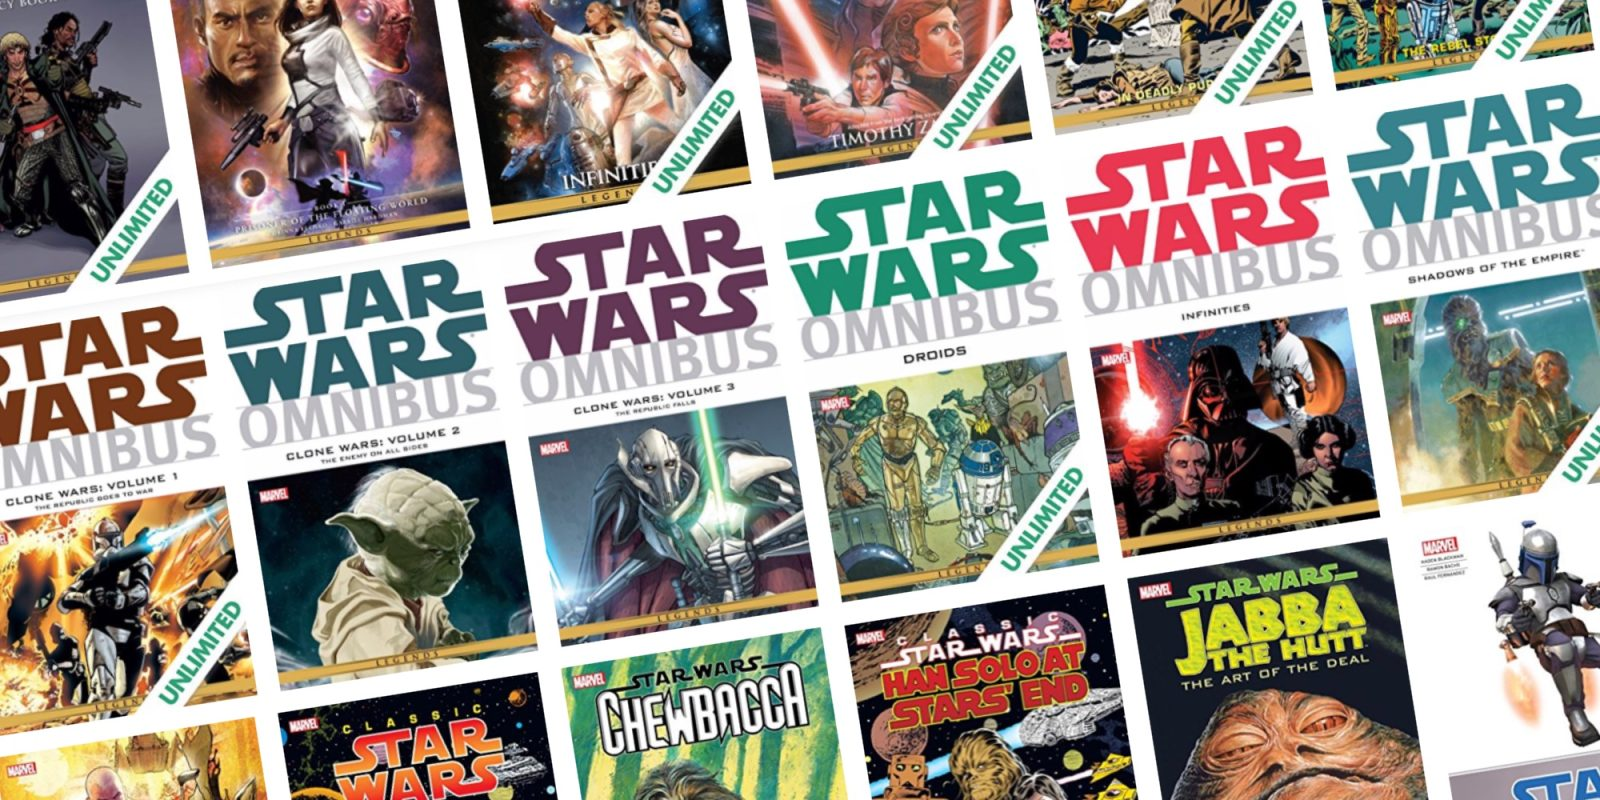 ComiXology discounts Marvel Star Wars and DC comics with deals from under $1